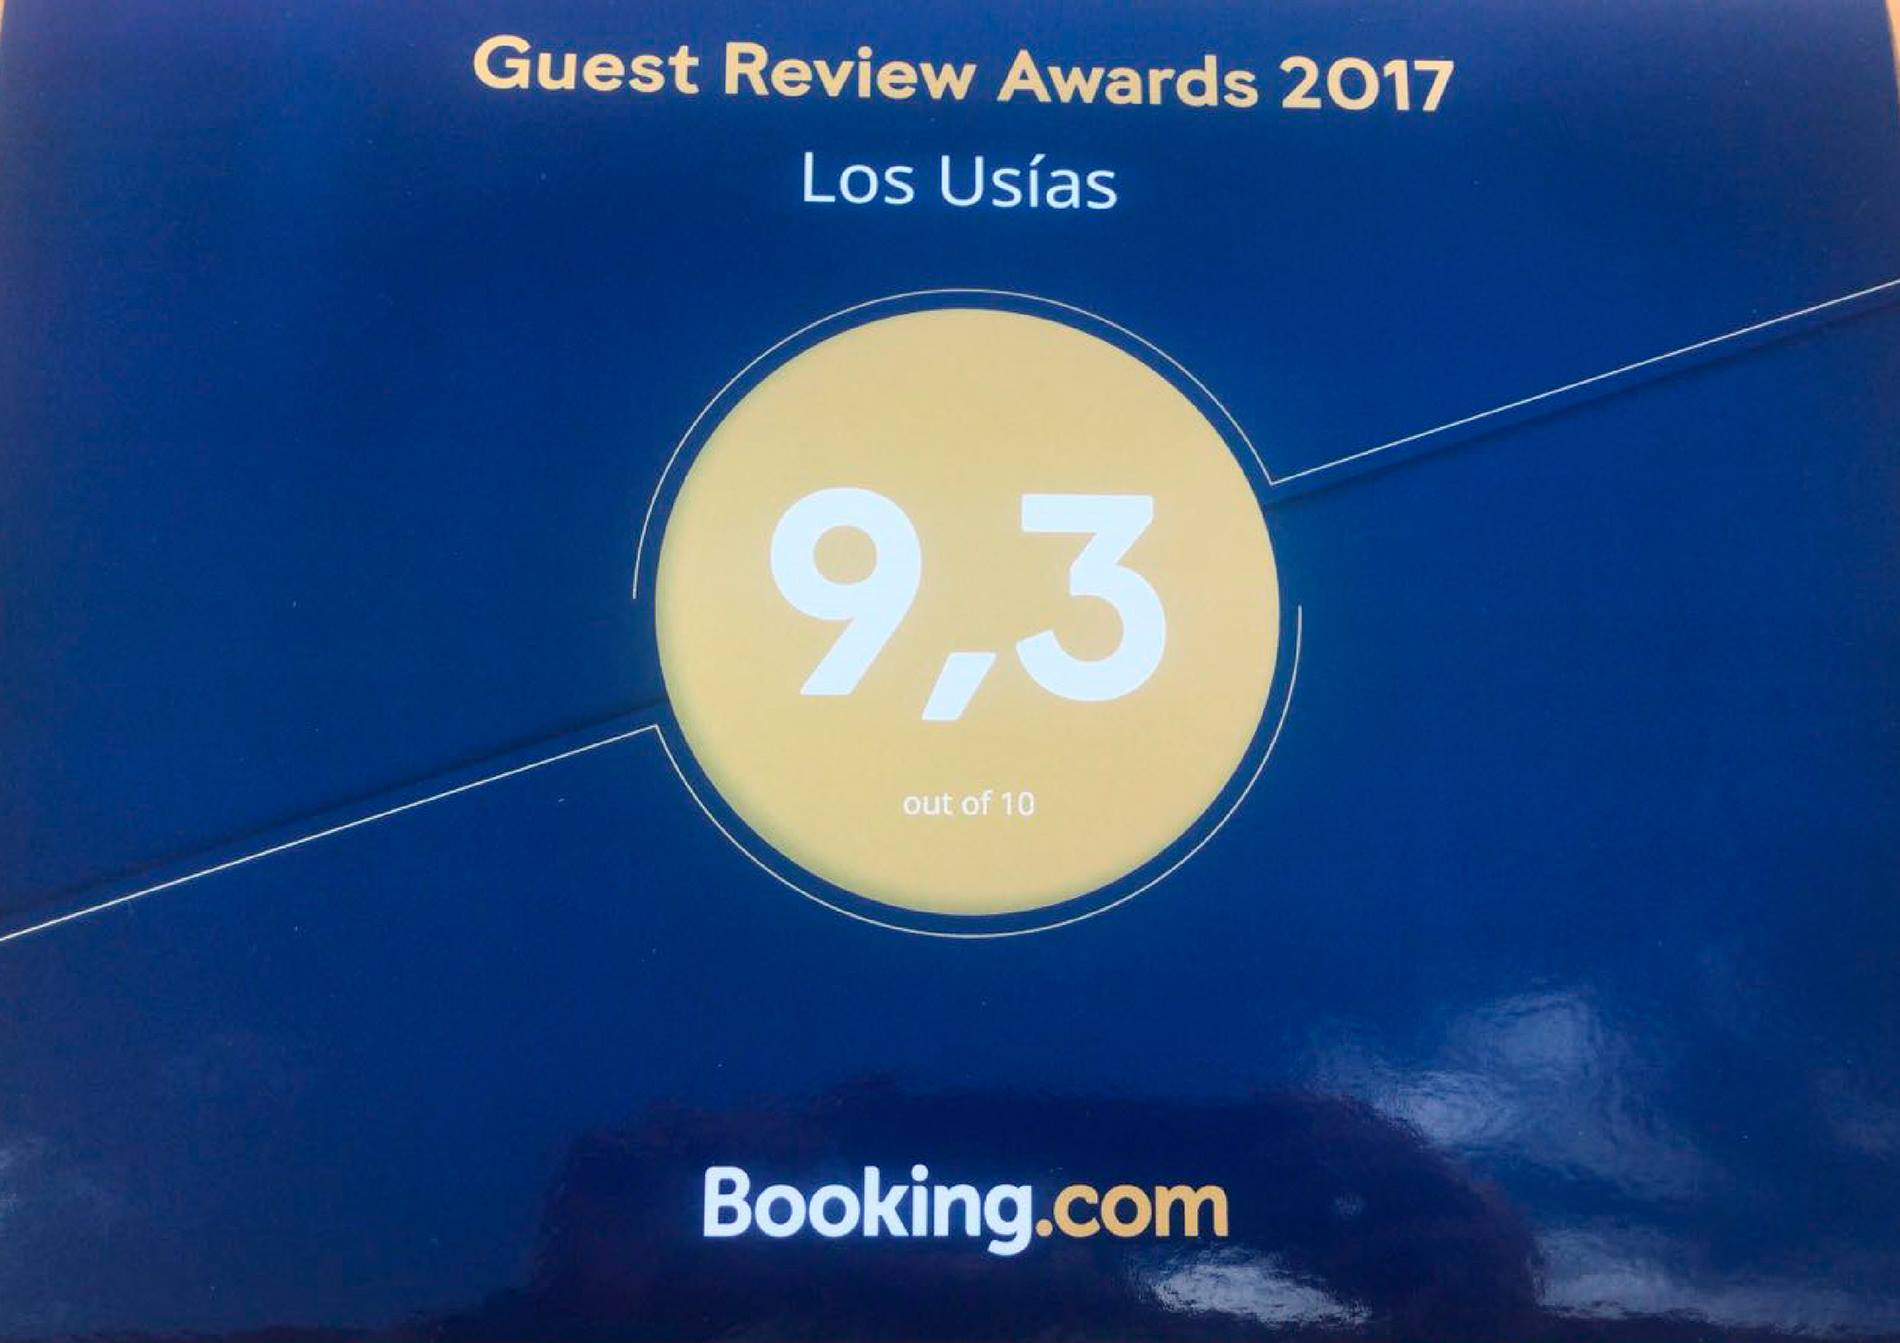 Premio Guest Review Award 2017 de Booking.com